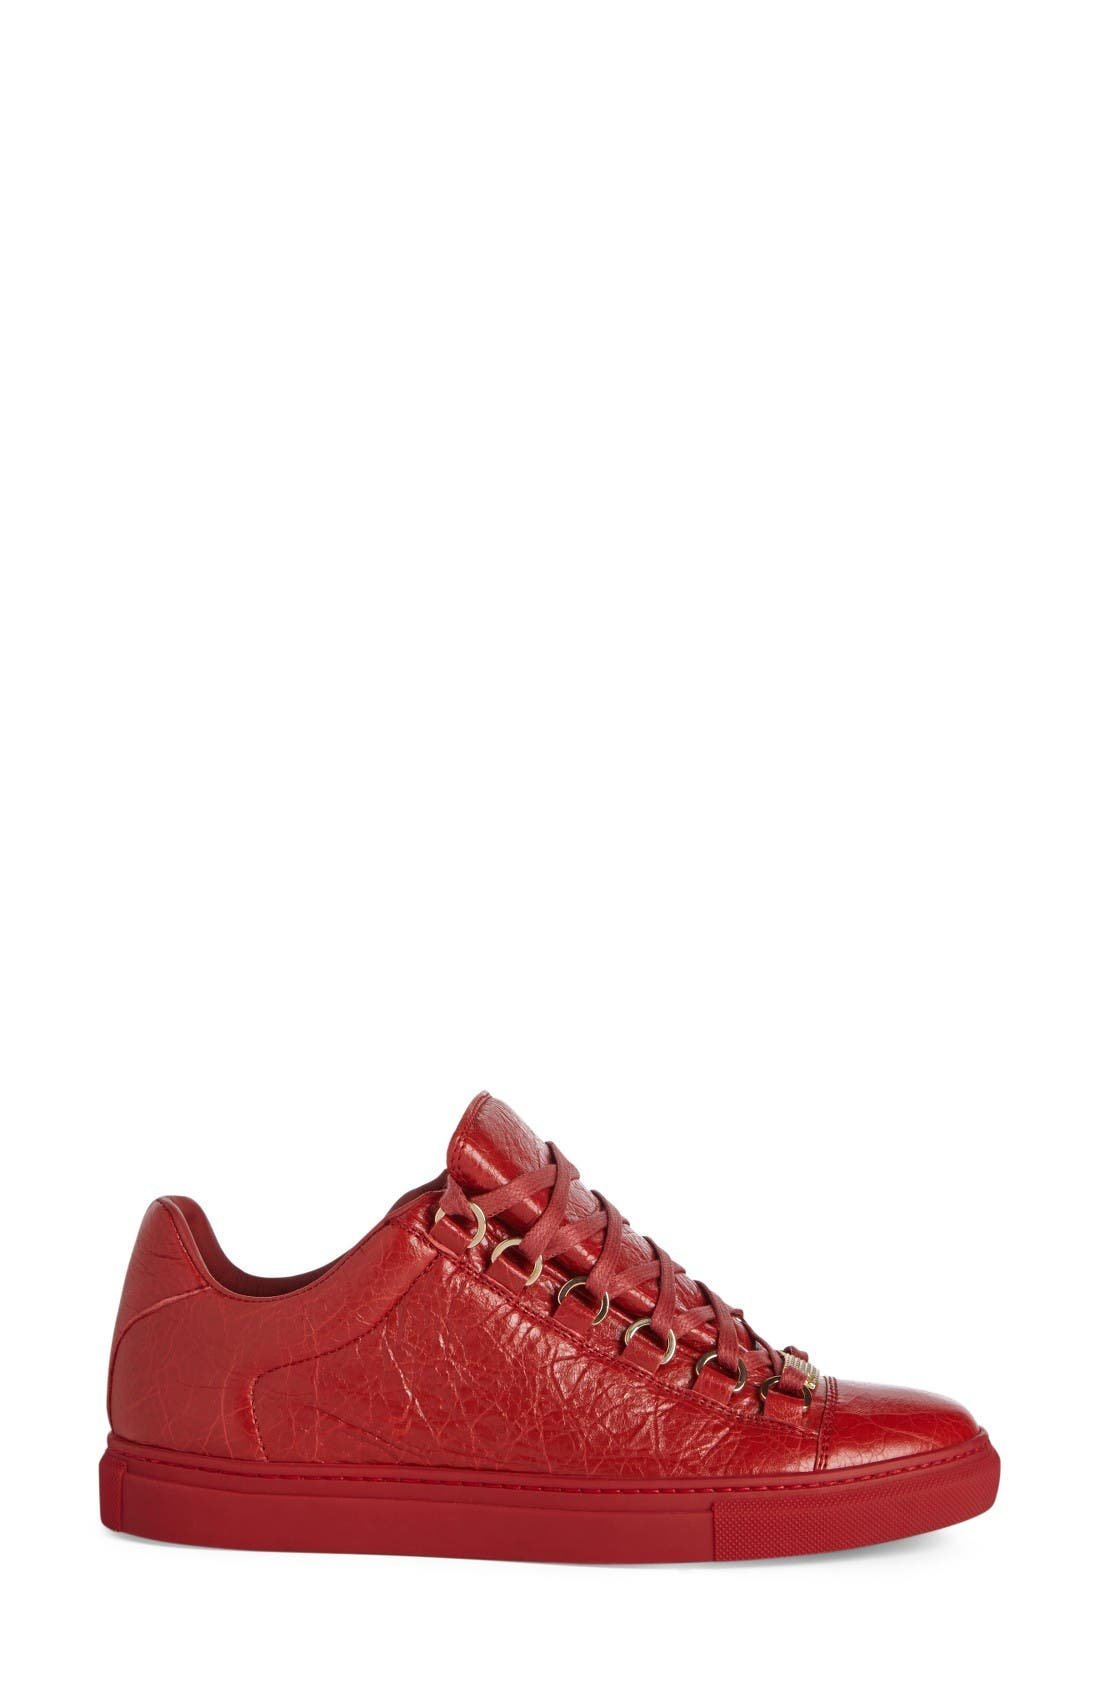 Low Top Sneaker,                             Alternate thumbnail 4, color,                             Red Leather